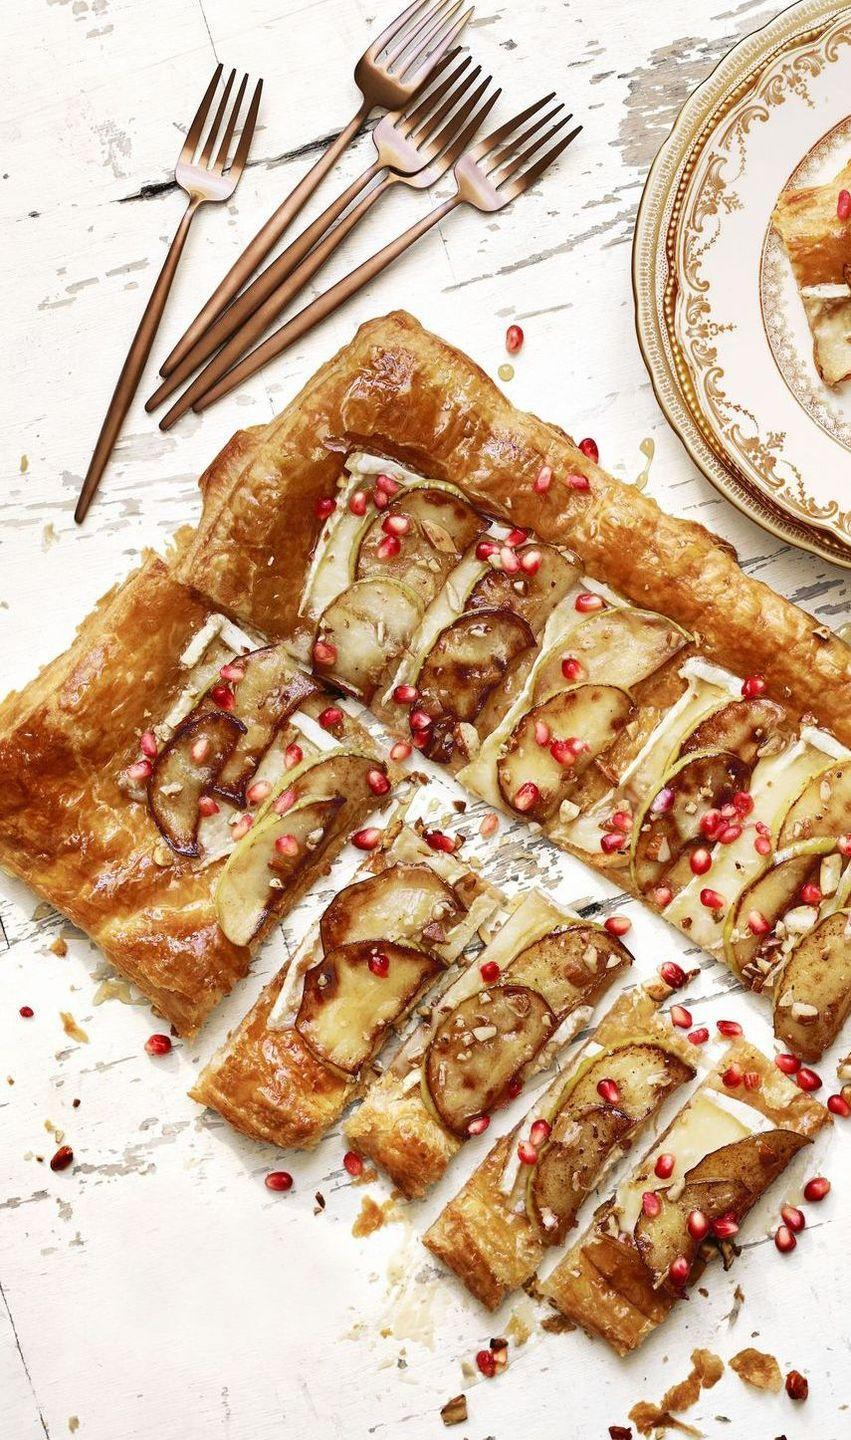 "<p>Here's a good dish for when you need to look fancy with minimal effort, thanks to frozen puff pastry.</p><p><em><a href=""https://www.goodhousekeeping.com/food-recipes/a41395/best-brie-apple-tart/"" rel=""nofollow noopener"" target=""_blank"" data-ylk=""slk:Get the recipe for Lauren Conrad's Brie and Apple Tart »"" class=""link rapid-noclick-resp"">Get the recipe for Lauren Conrad's Brie and Apple Tart »</a></em></p>"